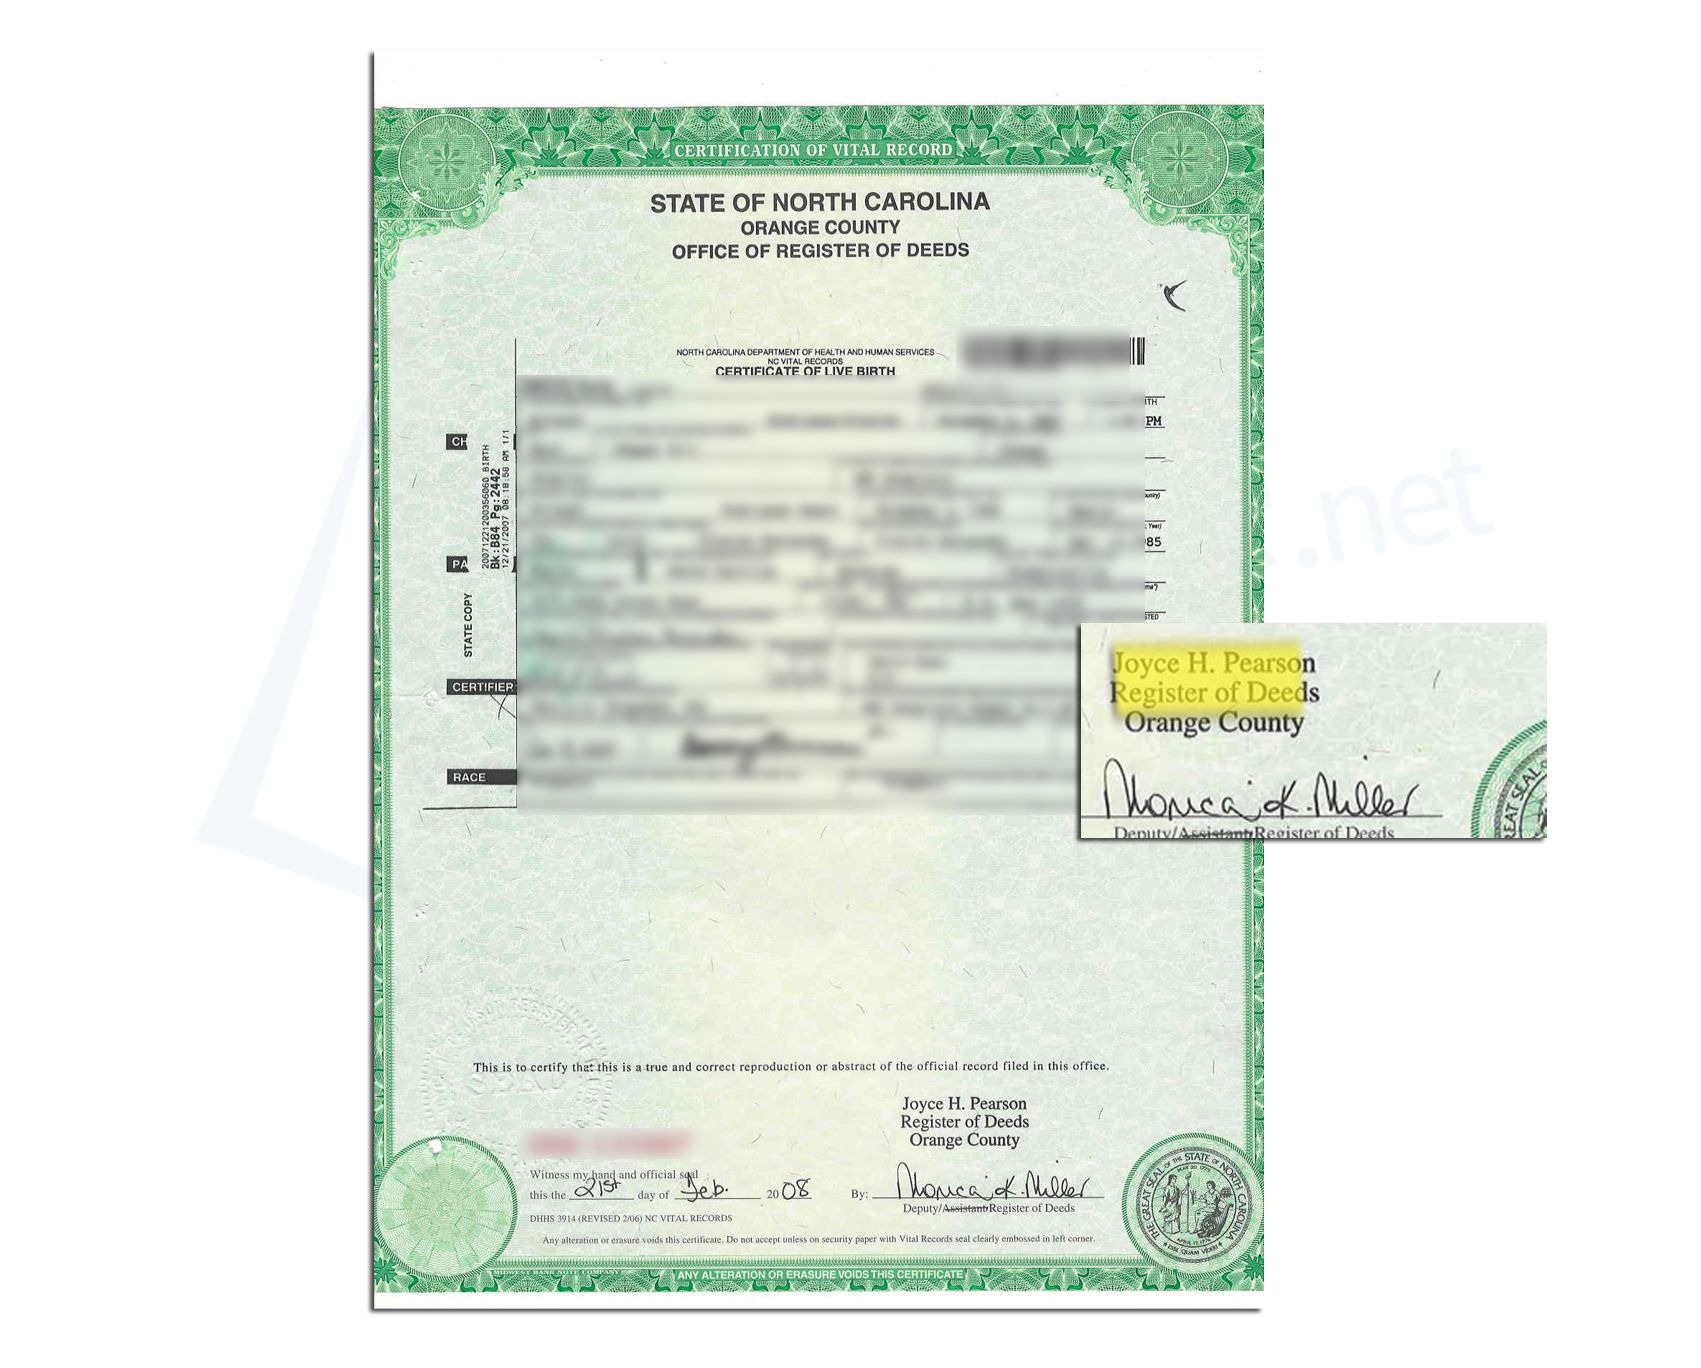 Orange County State Of North Carolina Birth Certificate Issued By